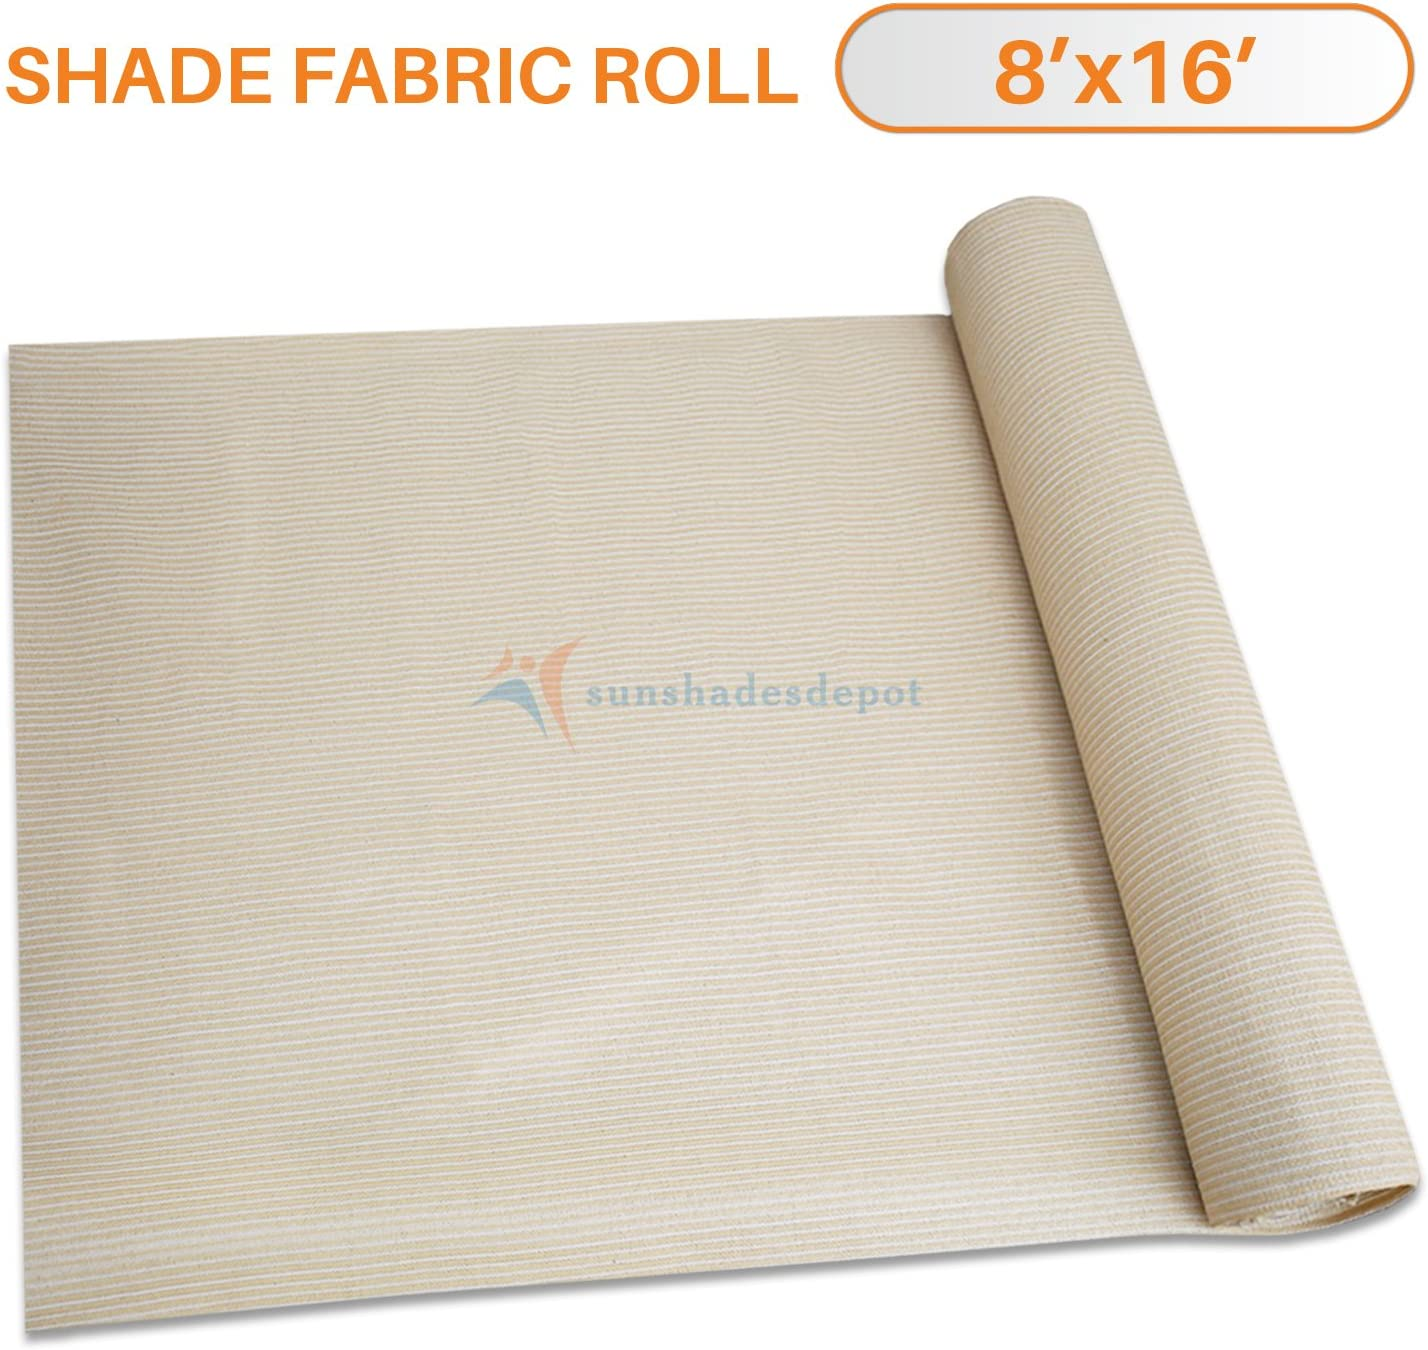 TANG Sunshades Depot 8 x15 Shade Cloth 180 GSM HDPE Beige Fabric Roll Up to 95 Blockage UV Resistant Mesh Net for Outdoor Backyard Garden Plant Barn Greenhouse